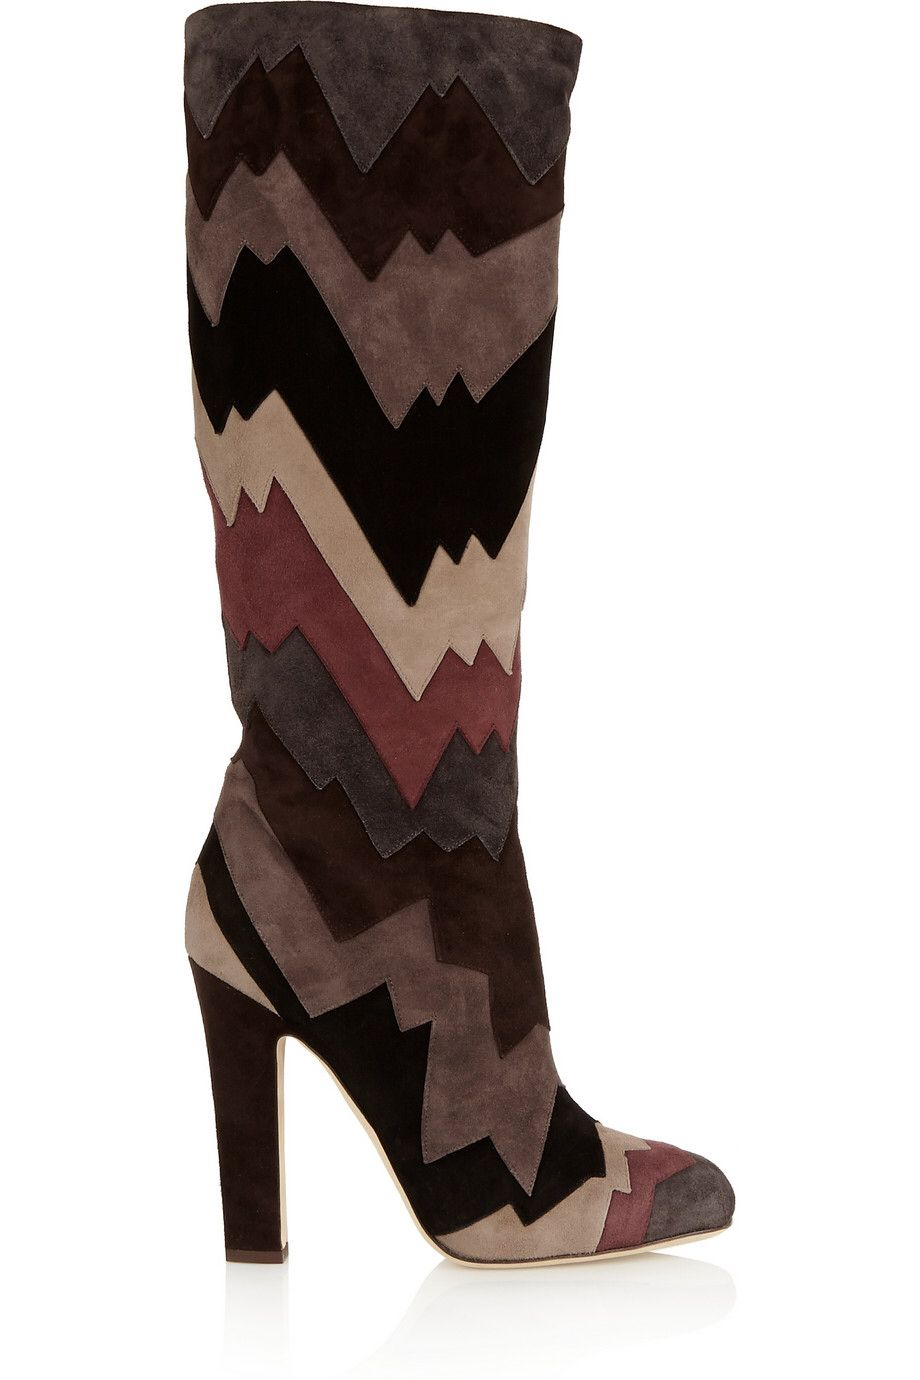 JIMMY CHOO Divina color-block suede knee boots £492.75 http://www.theoutnet.com/products/637335